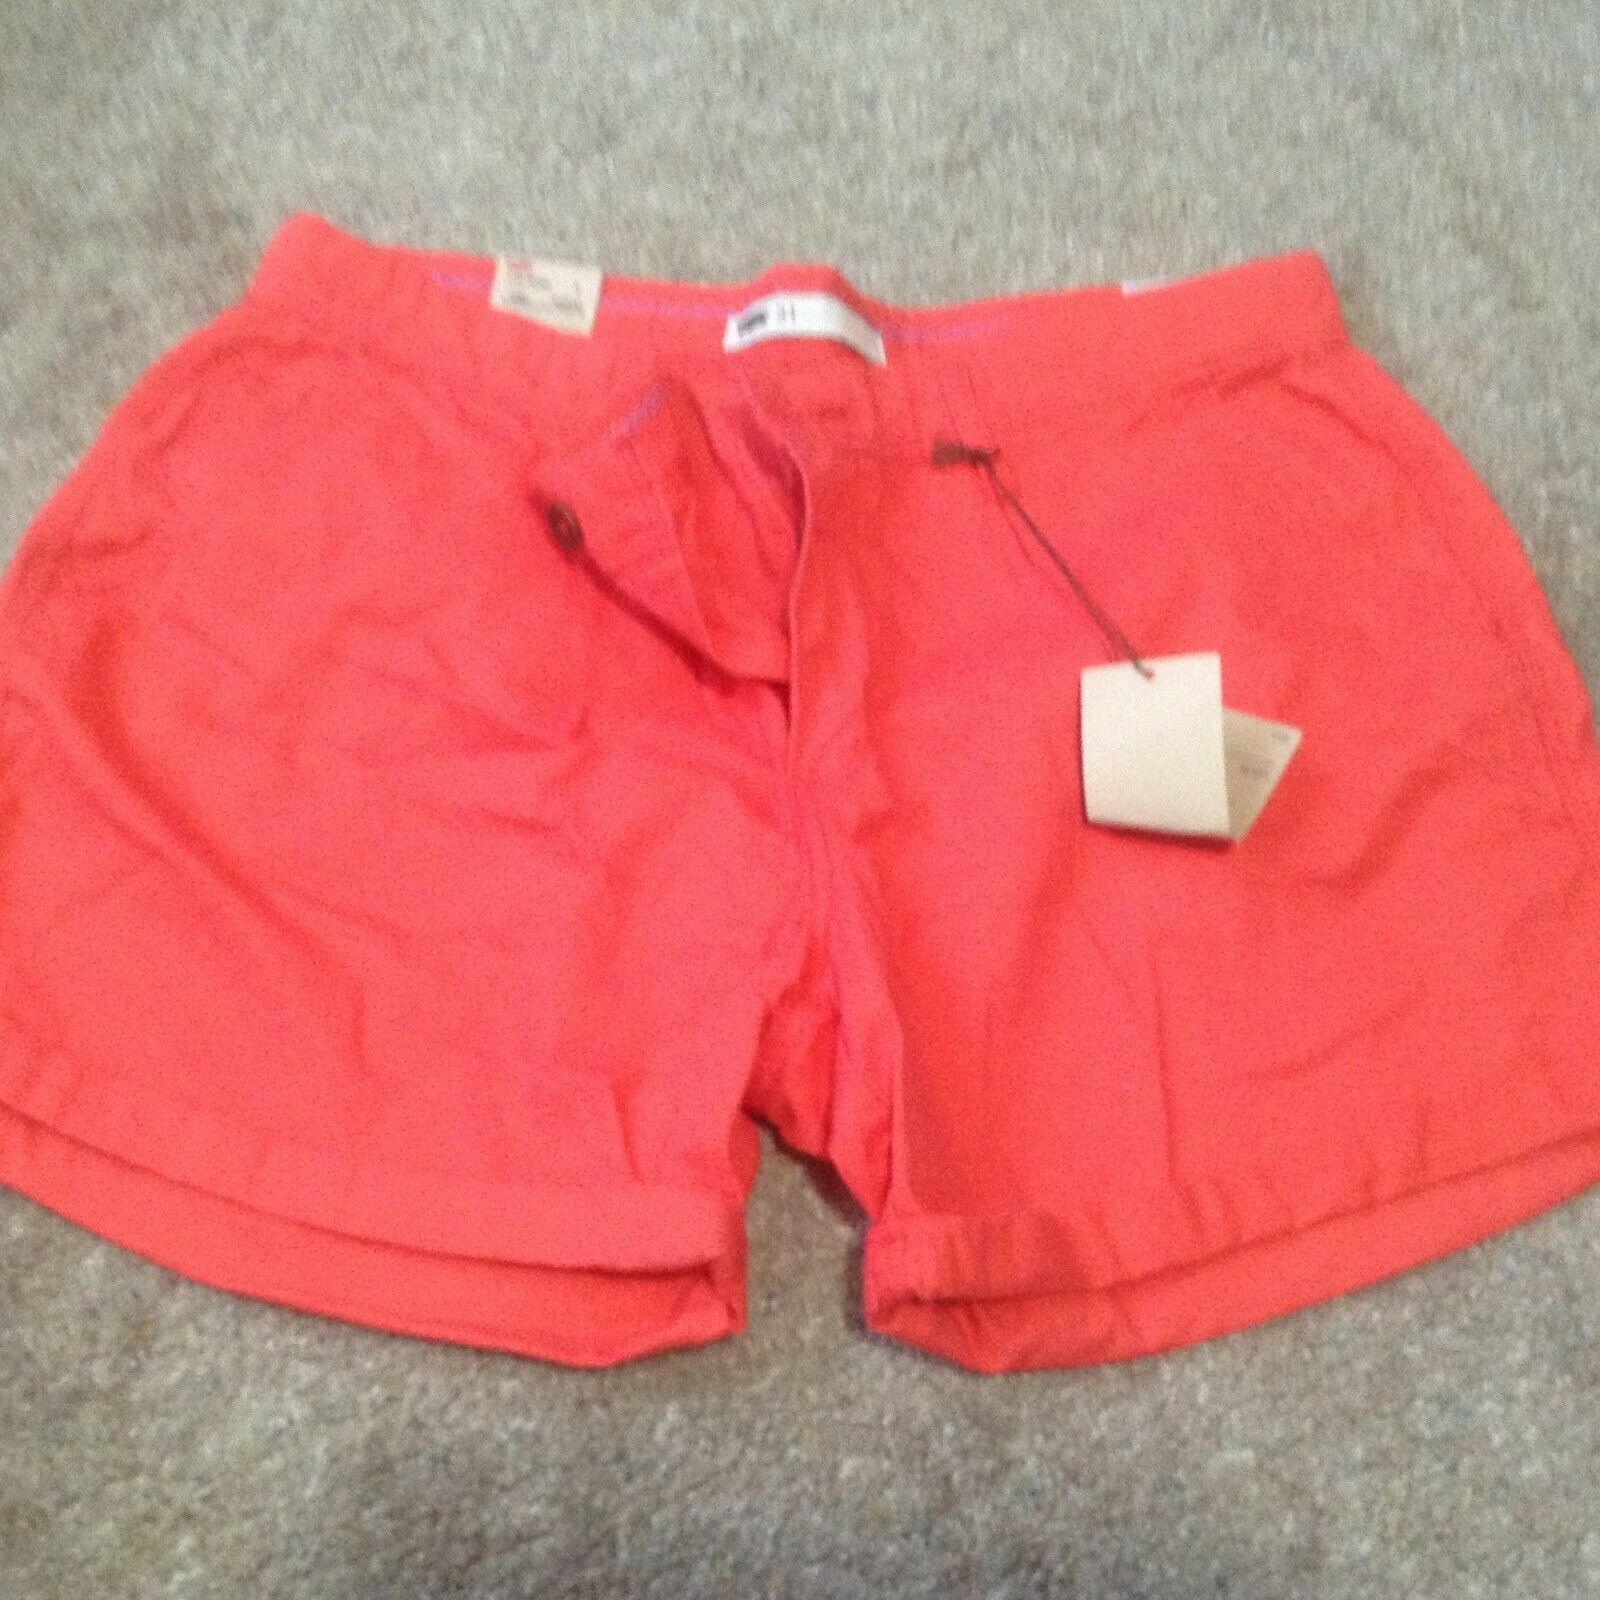 Primary image for Levi's Shorts Women's sz 31 12 new nwt melon orange